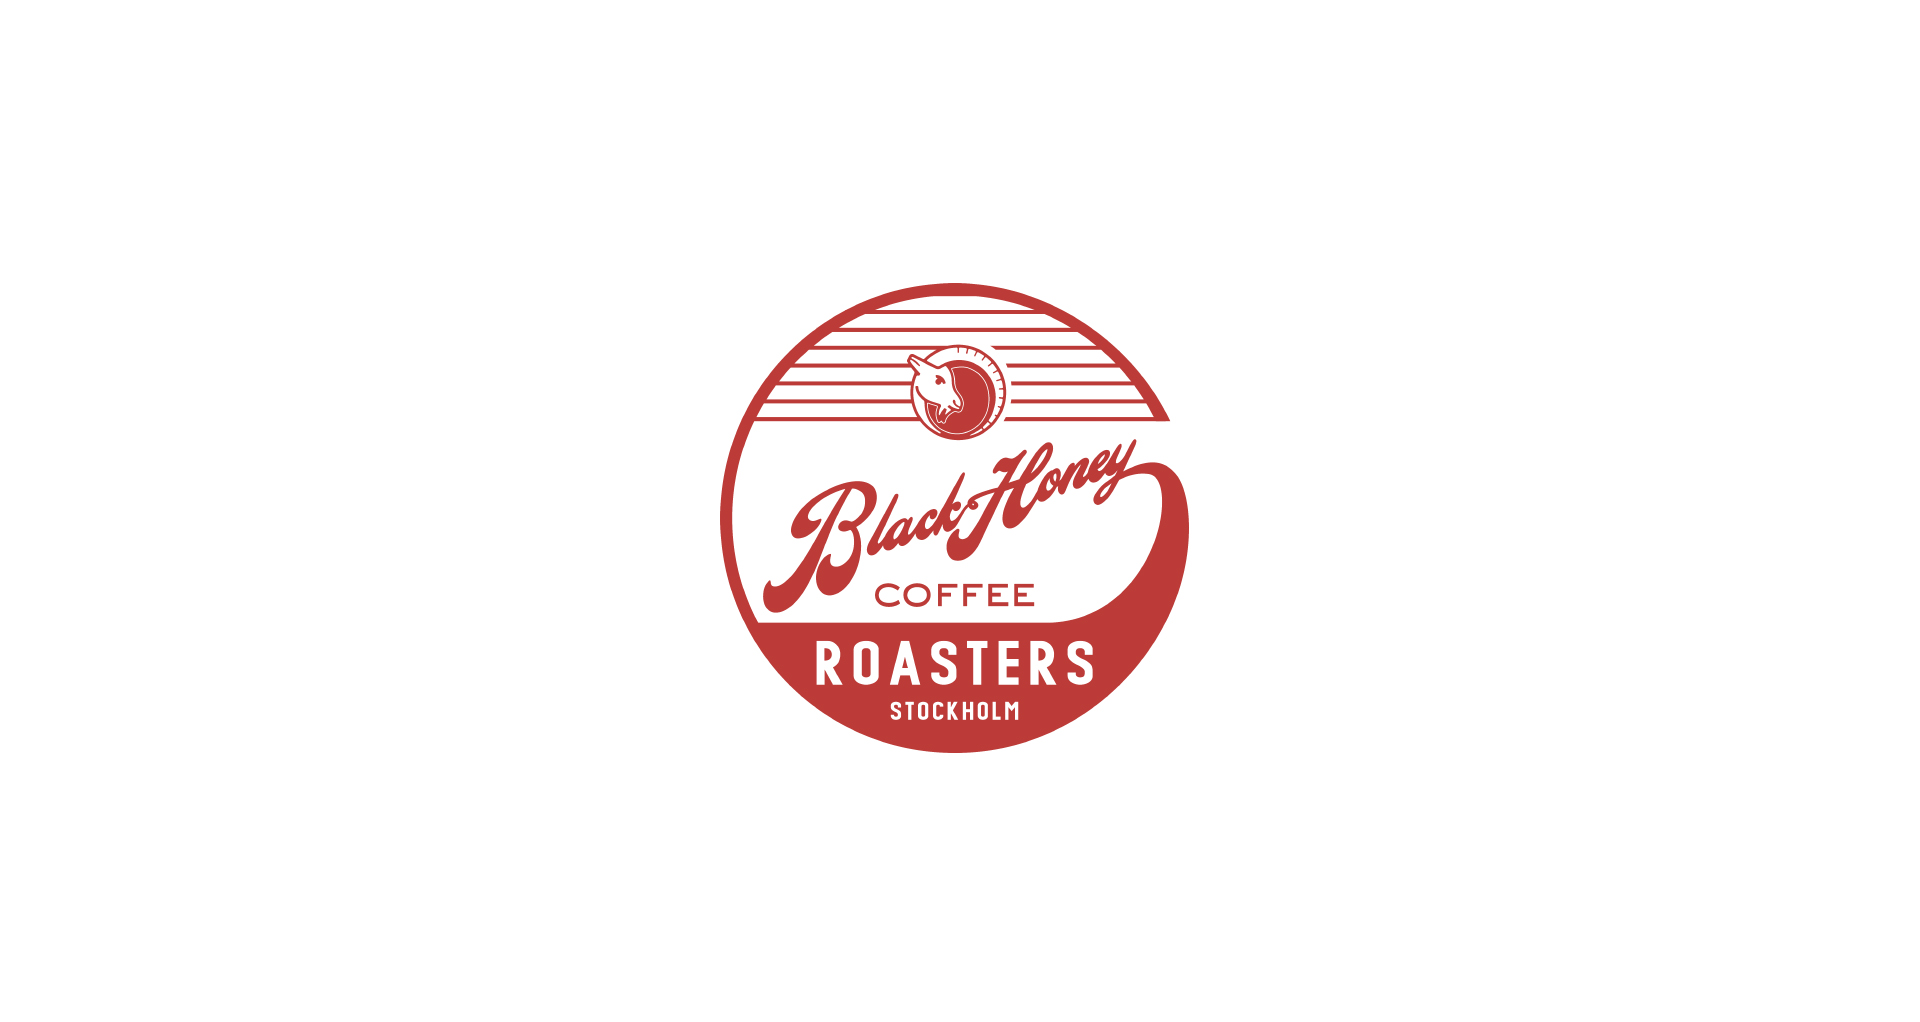 black-honey-coffee-roasters-design-logo-branding-stockholm-zeki-michael-agency-branding-vintage-retro-logo-badge.jpg